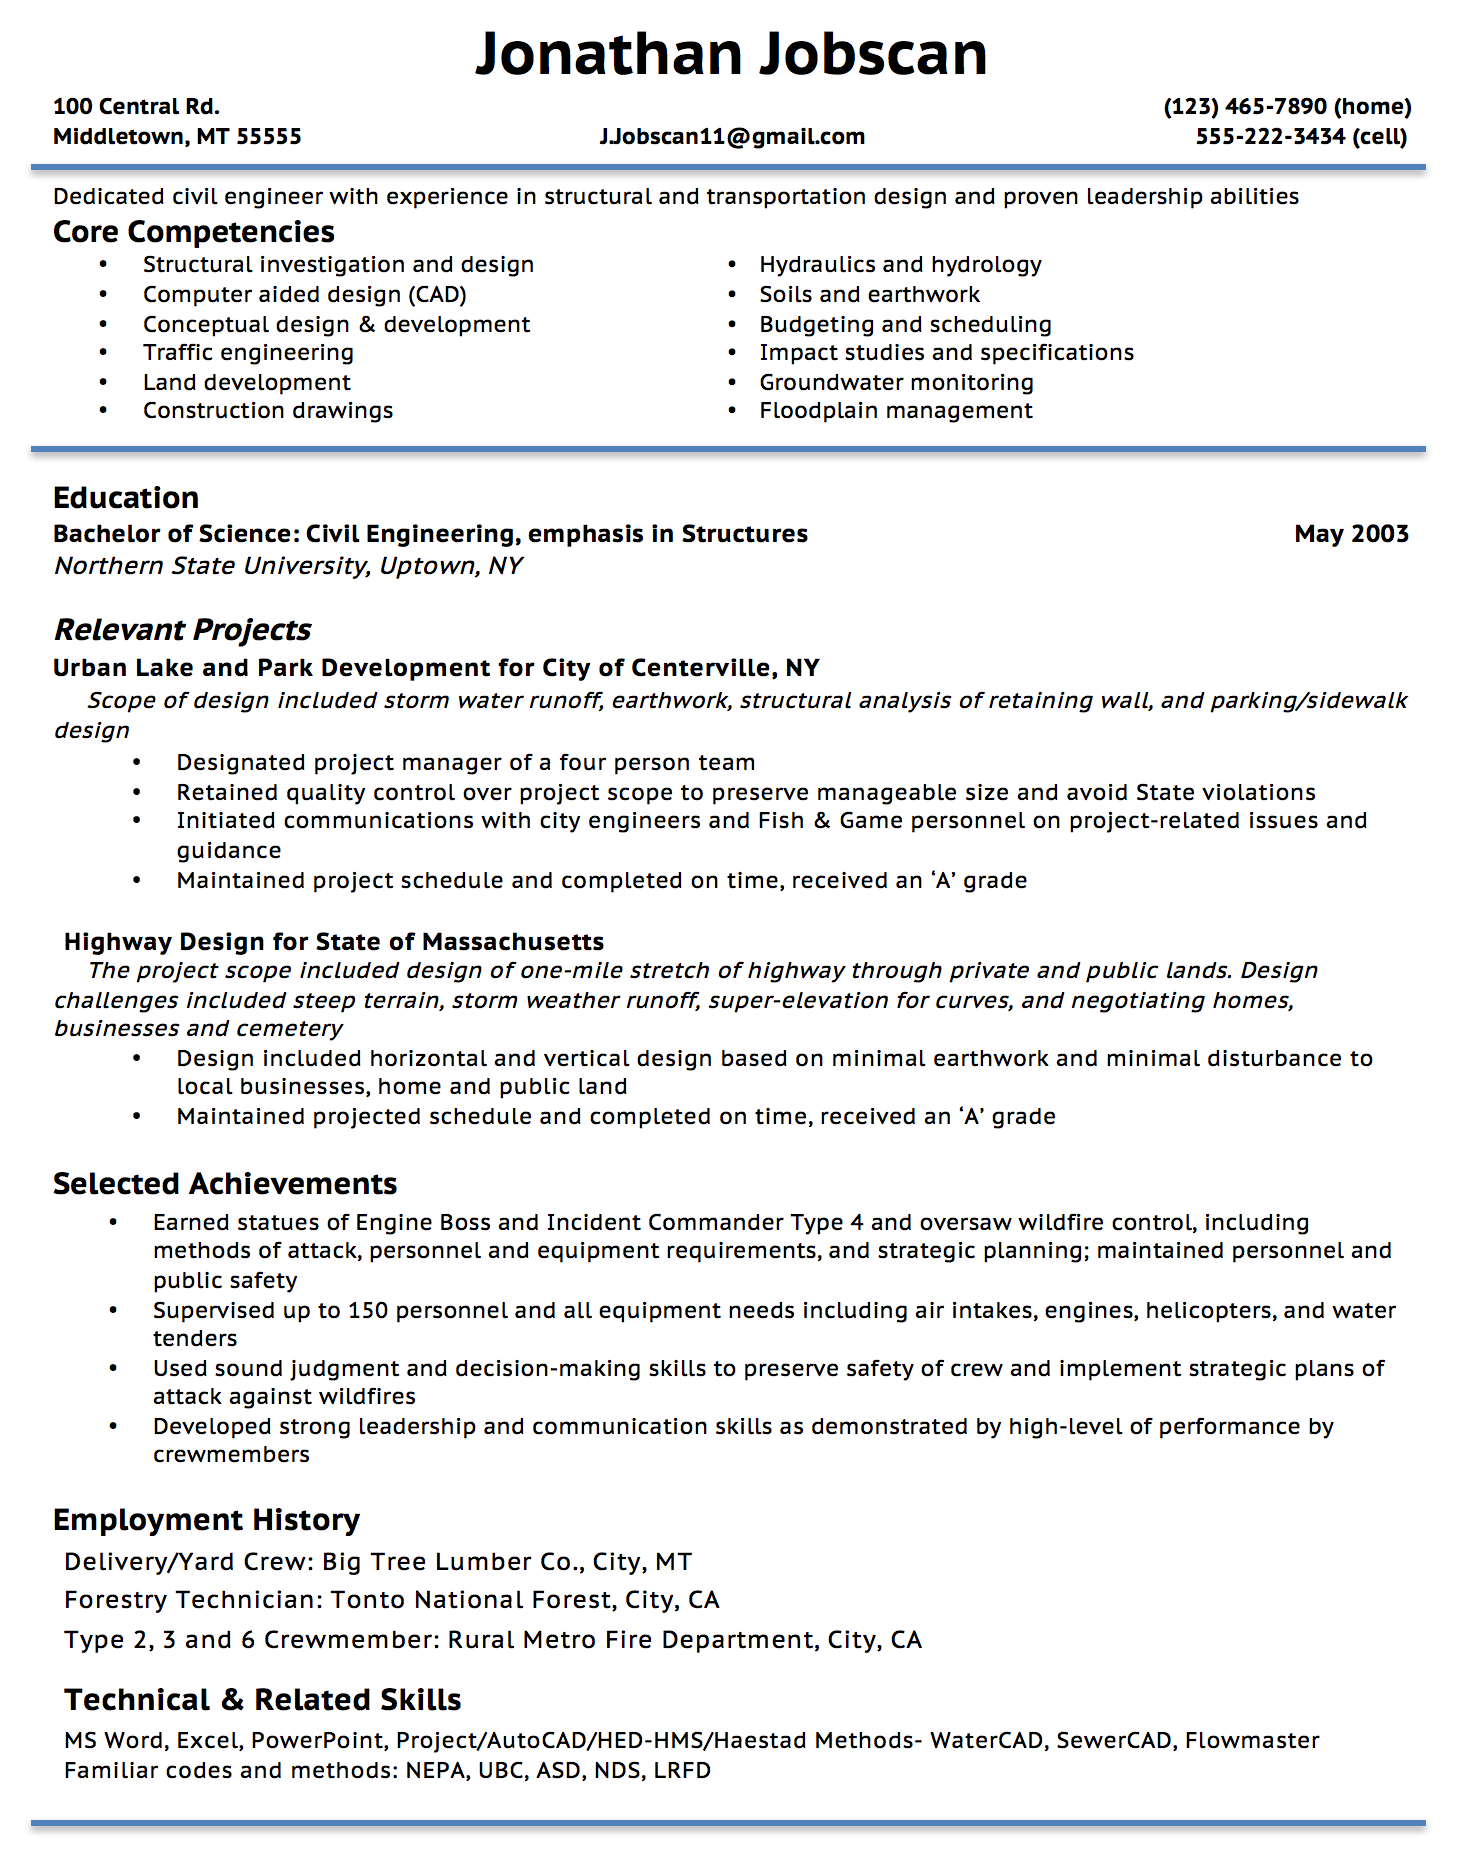 Opposenewapstandardsus  Pleasing Resume Writing Guide  Jobscan With Magnificent Example Of A Functional Resume Format With Awesome Job Descriptions For Resume Also Paralegal Resumes In Addition Formats For Resumes And Resume Tem As Well As Finance Resume Examples Additionally Objective Part Of Resume From Jobscanco With Opposenewapstandardsus  Magnificent Resume Writing Guide  Jobscan With Awesome Example Of A Functional Resume Format And Pleasing Job Descriptions For Resume Also Paralegal Resumes In Addition Formats For Resumes From Jobscanco